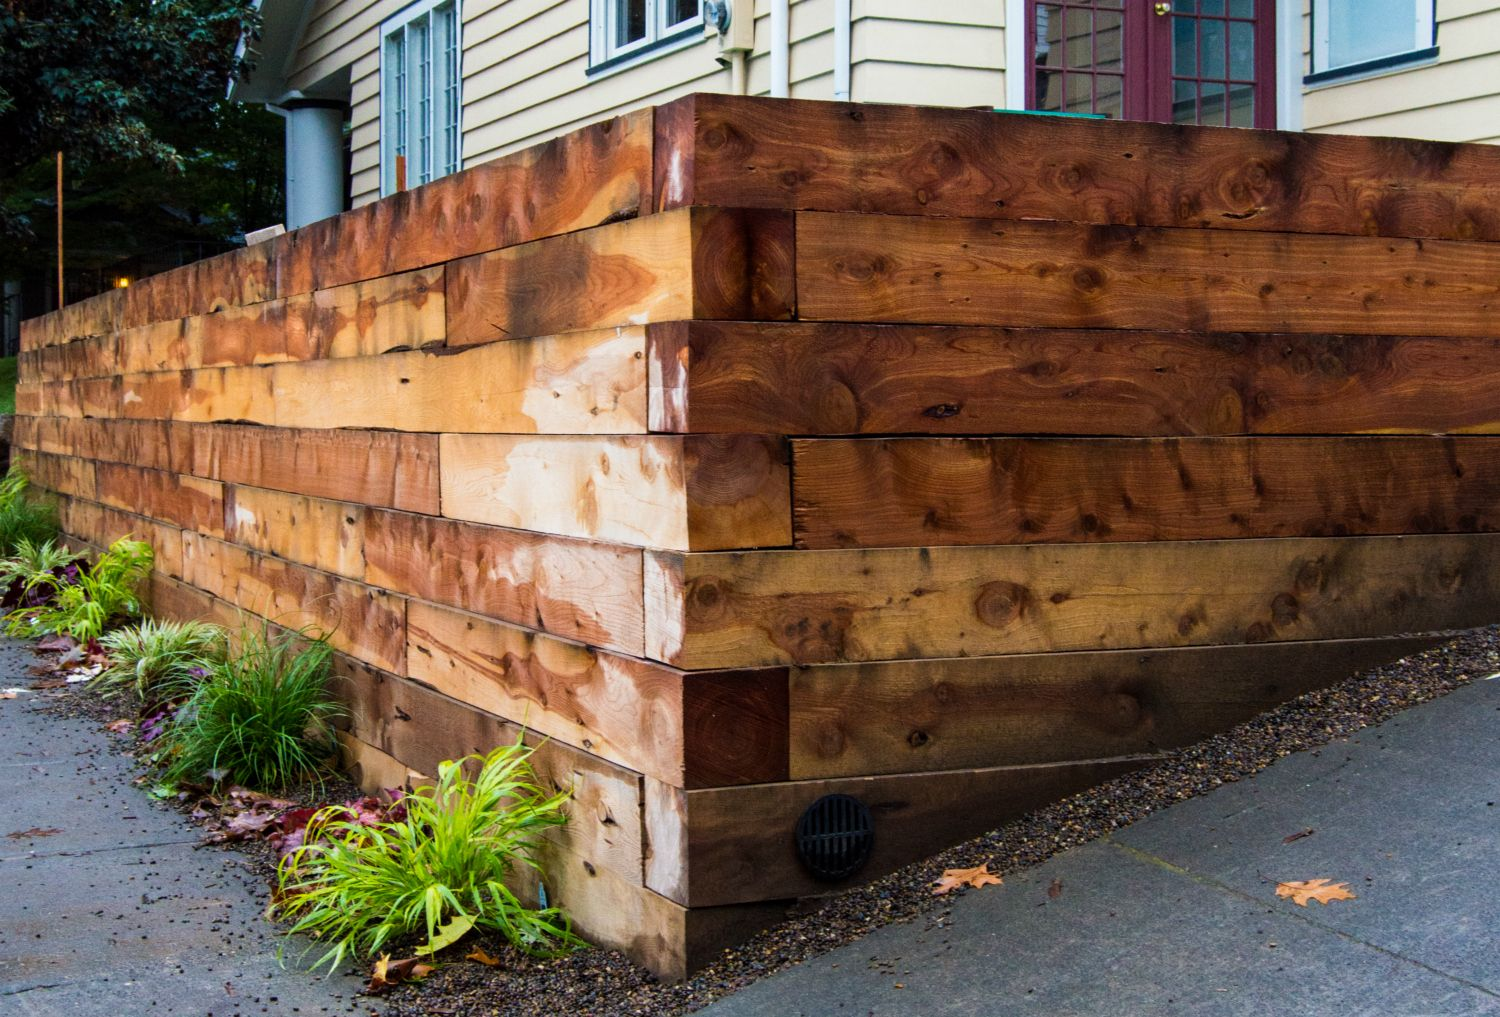 Solid Plastic Landscape Timbers : Hefty juniper landscaping timbers were used for this